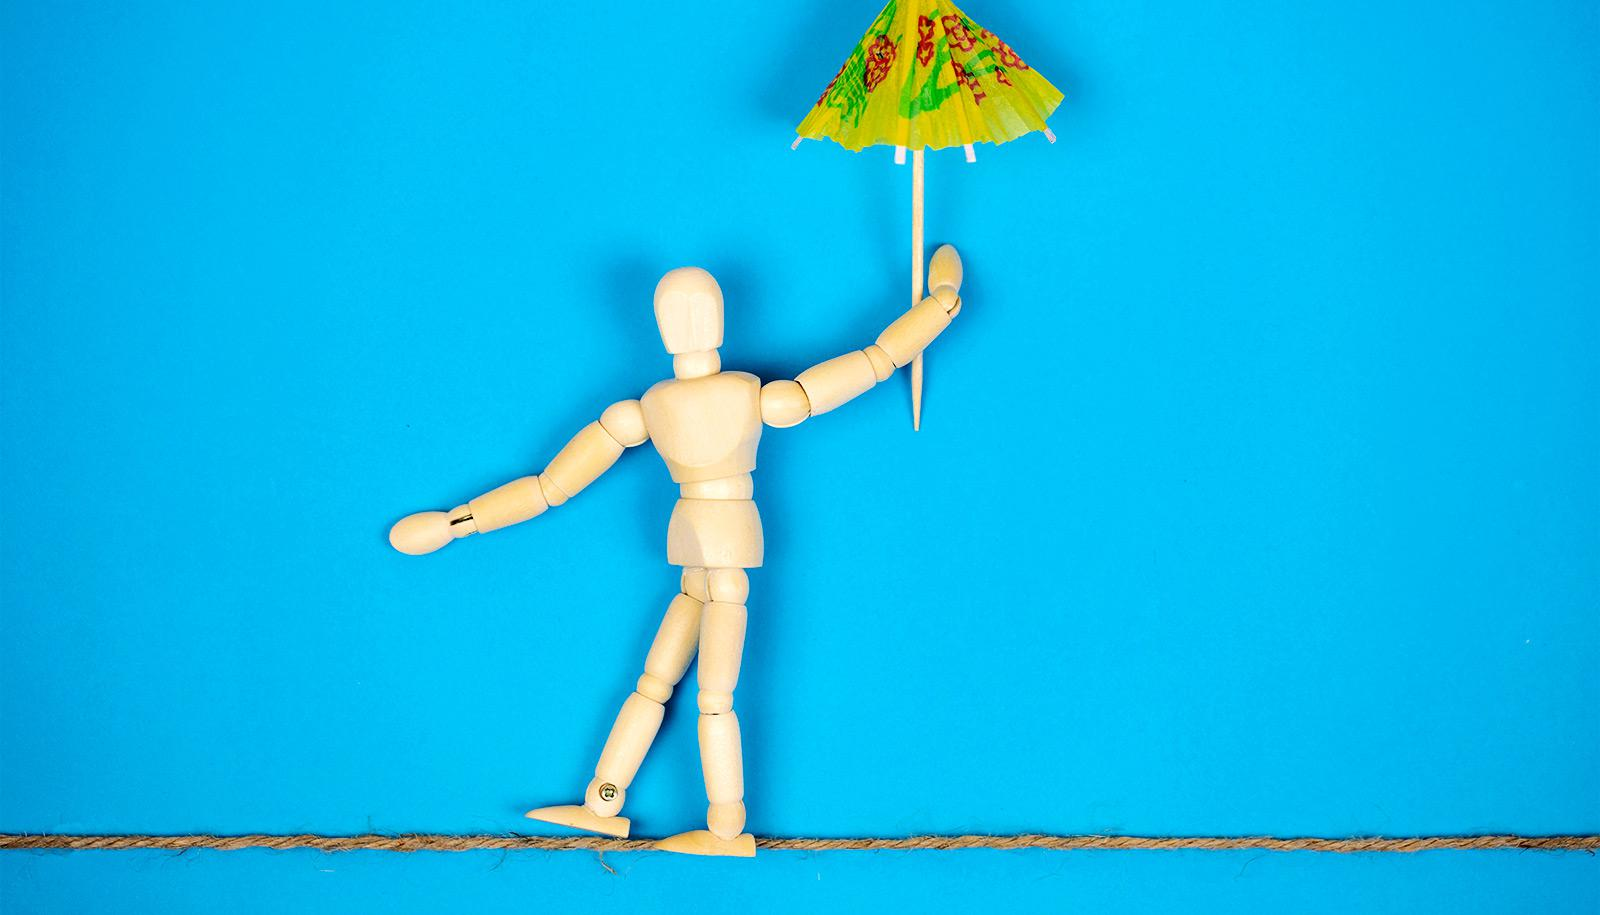 A wooden anatomy figure looks like its walking a tightrope while holding a cocktail umbrella